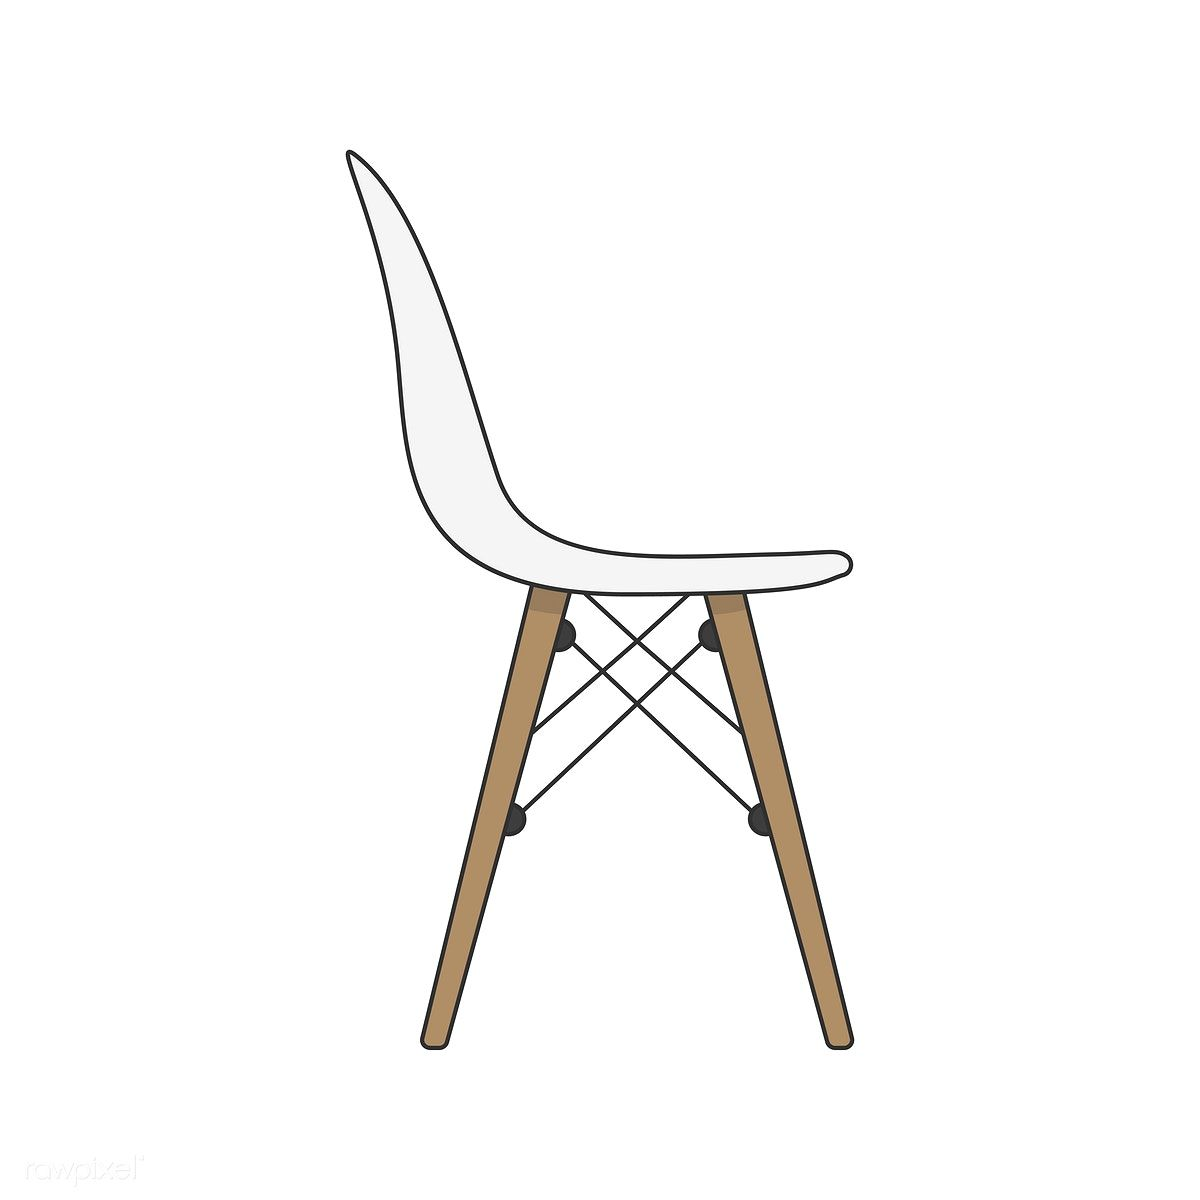 Illustration Of A Chair Free Image By Rawpixel Com Chair Feminine Wall Art Chair Style